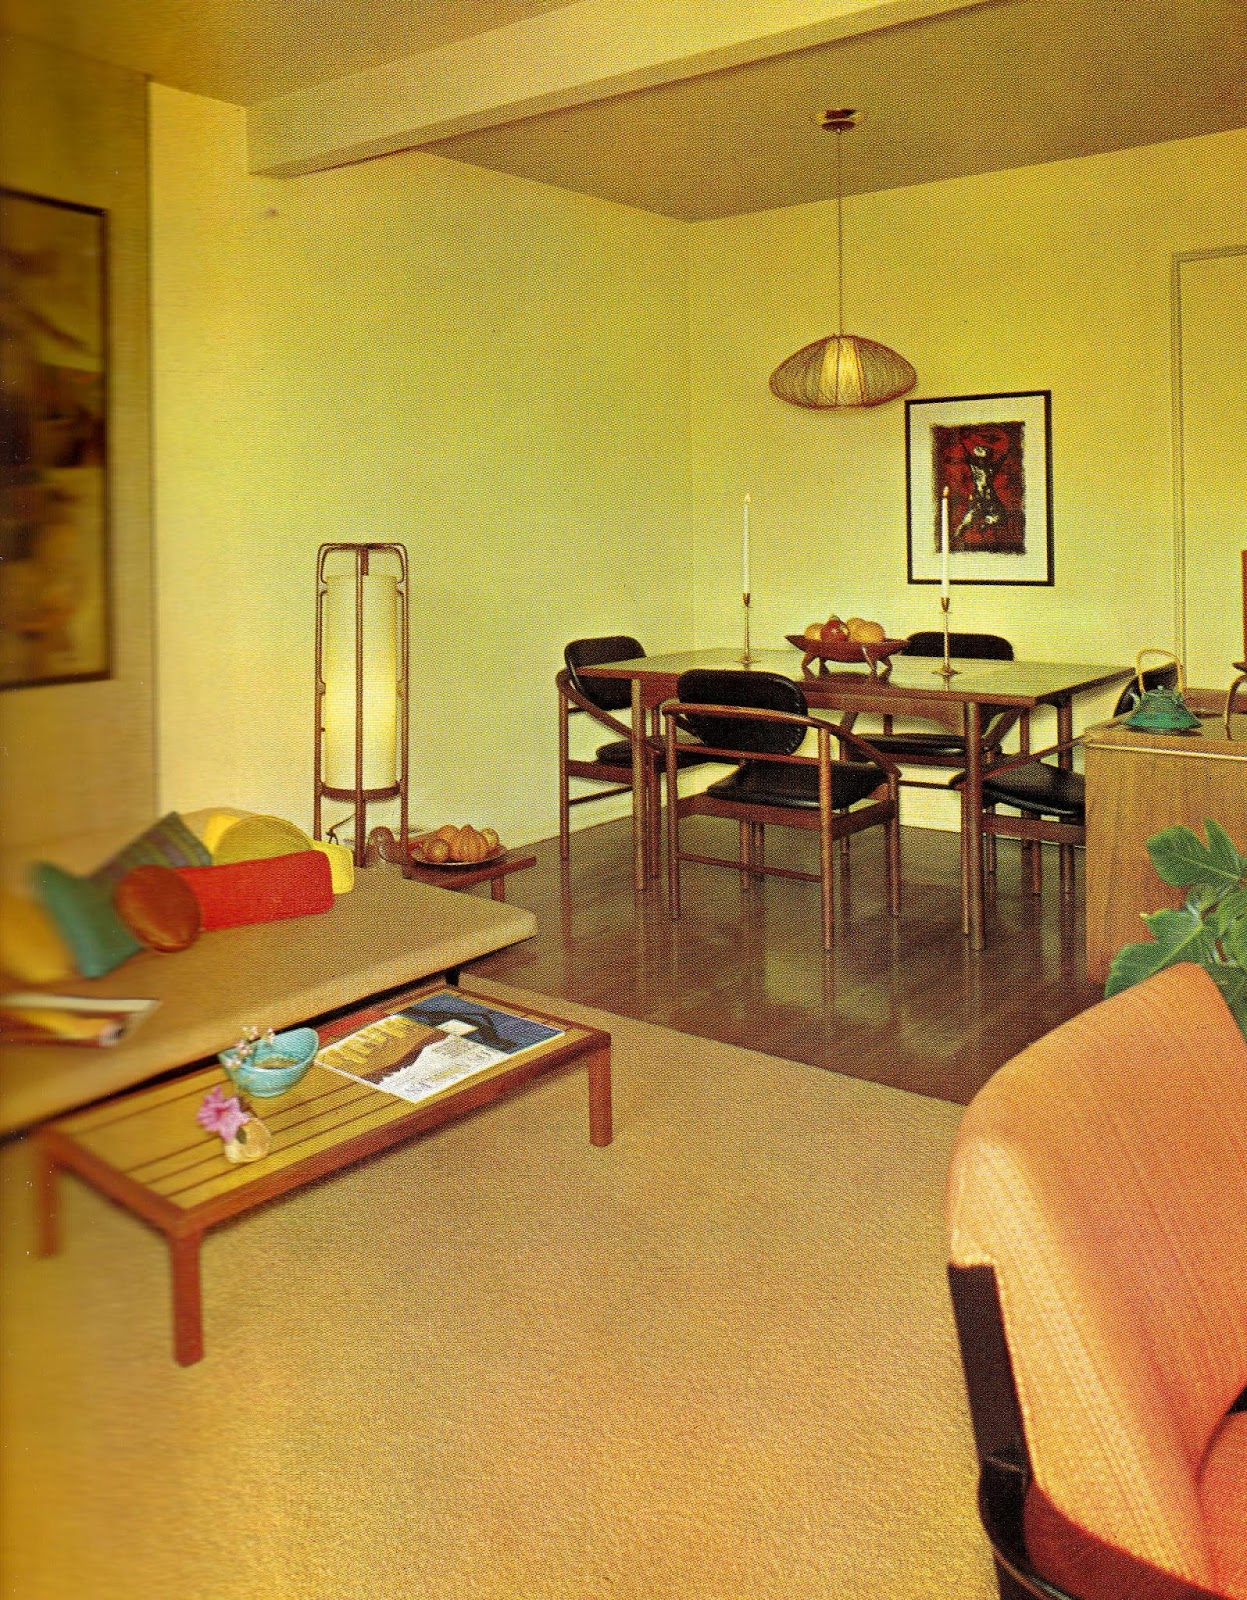 1960s interior d cor the decade of psychedelia gave rise